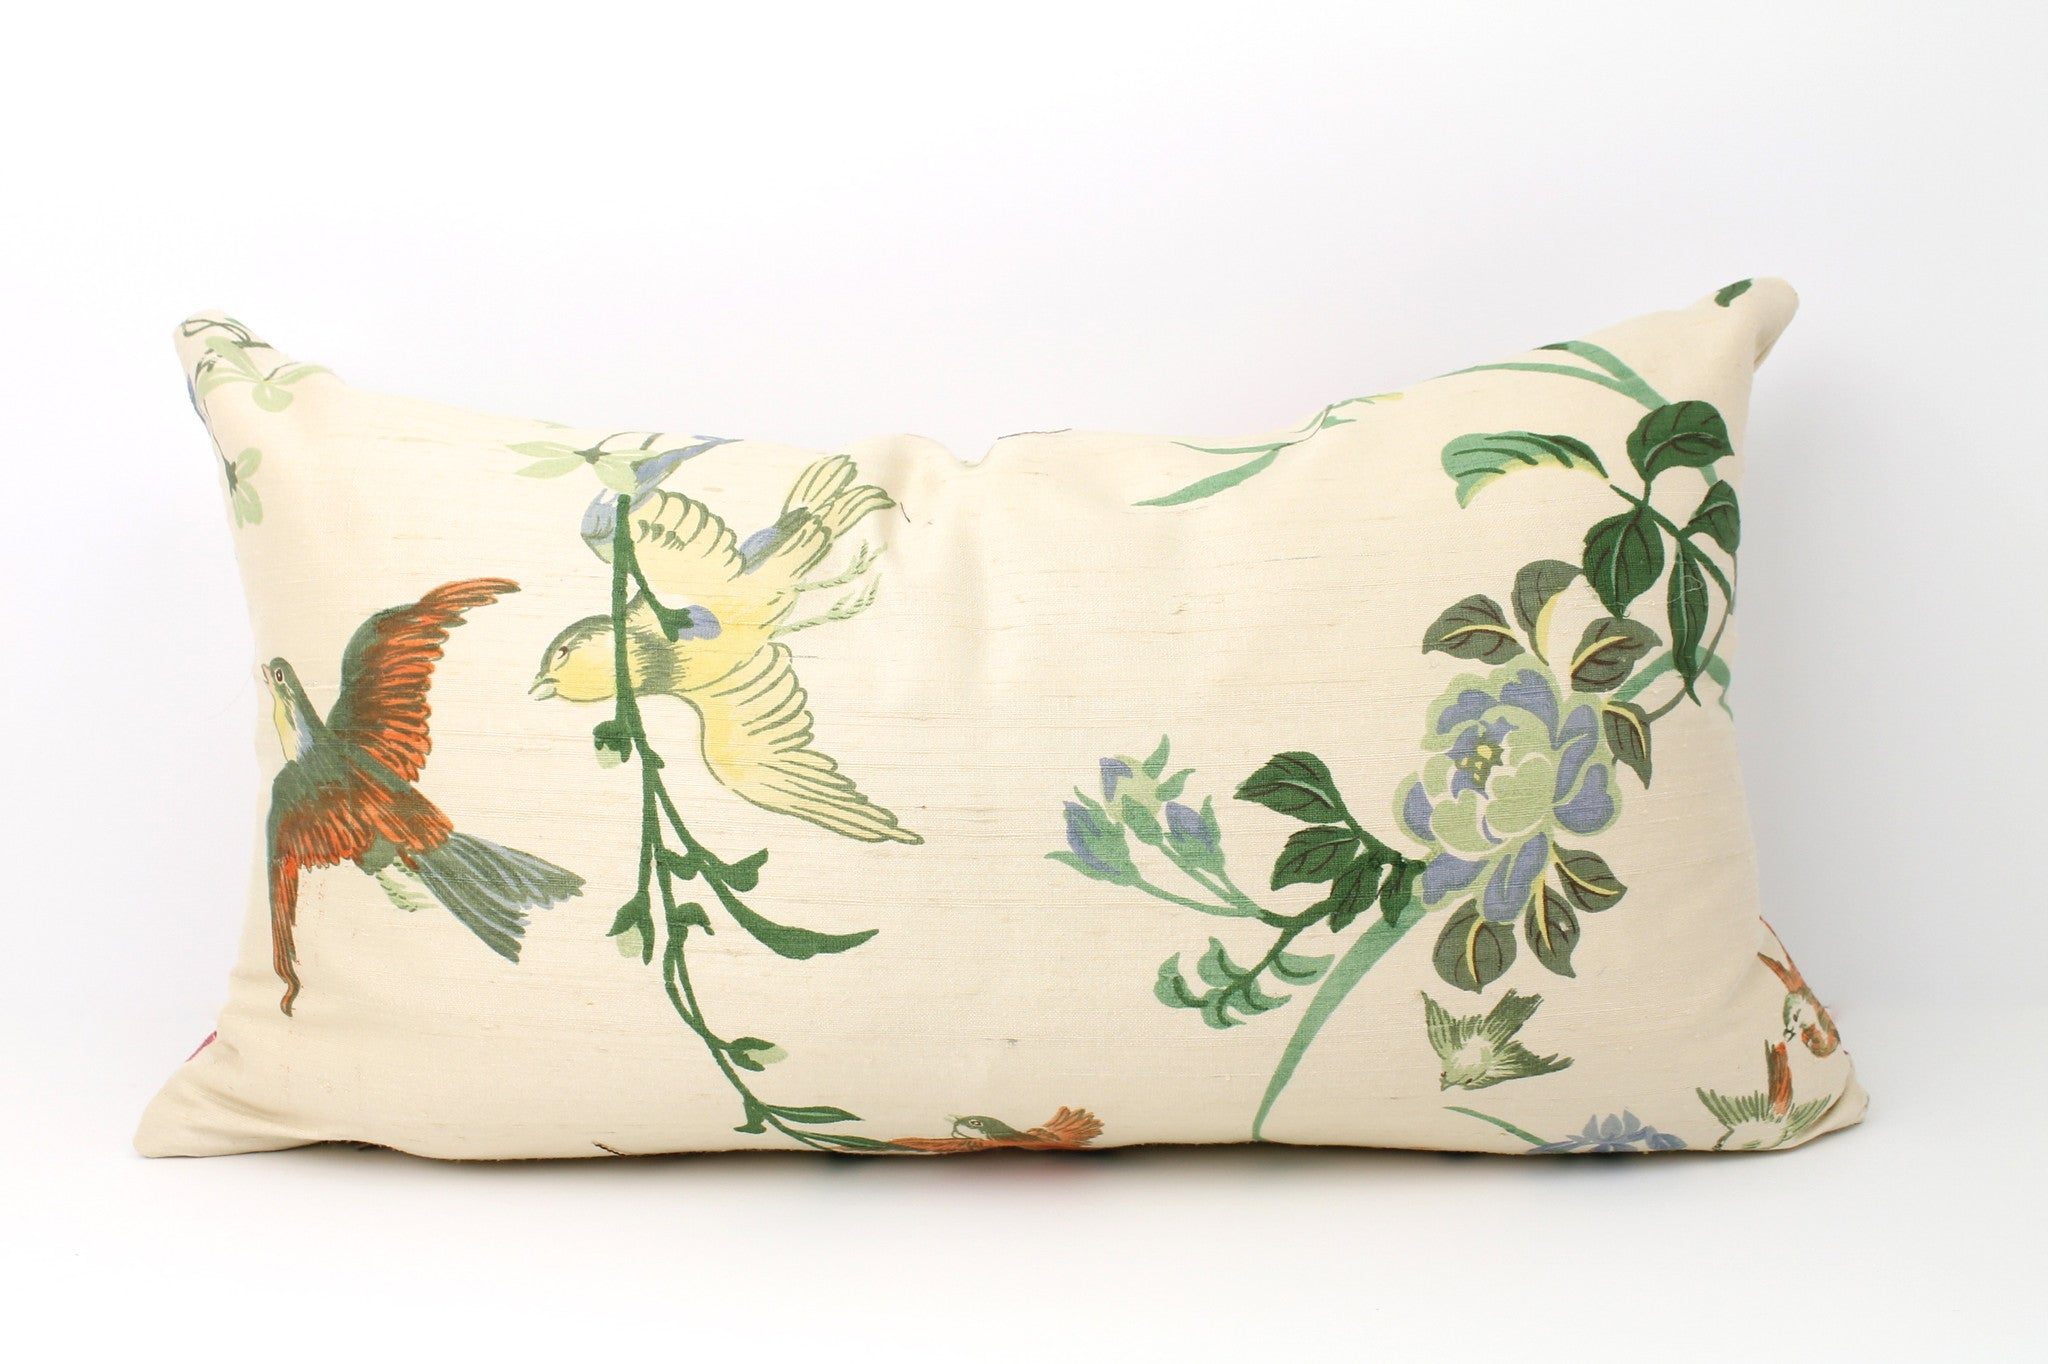 Hand Printed Chinoiserie Birds